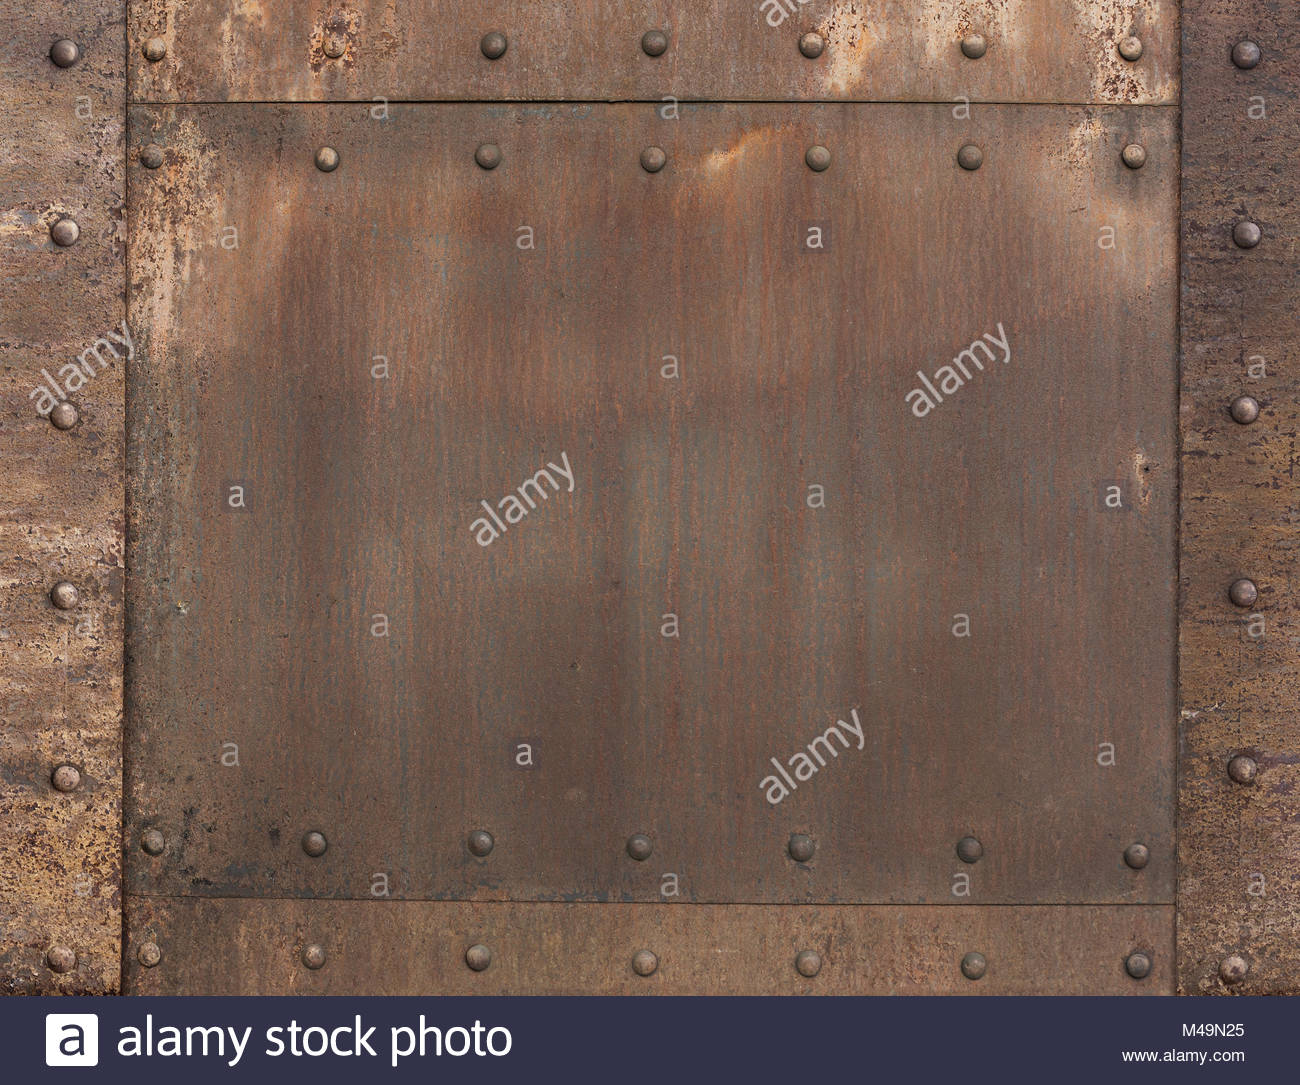 old rusty metal background with rivets M49N25